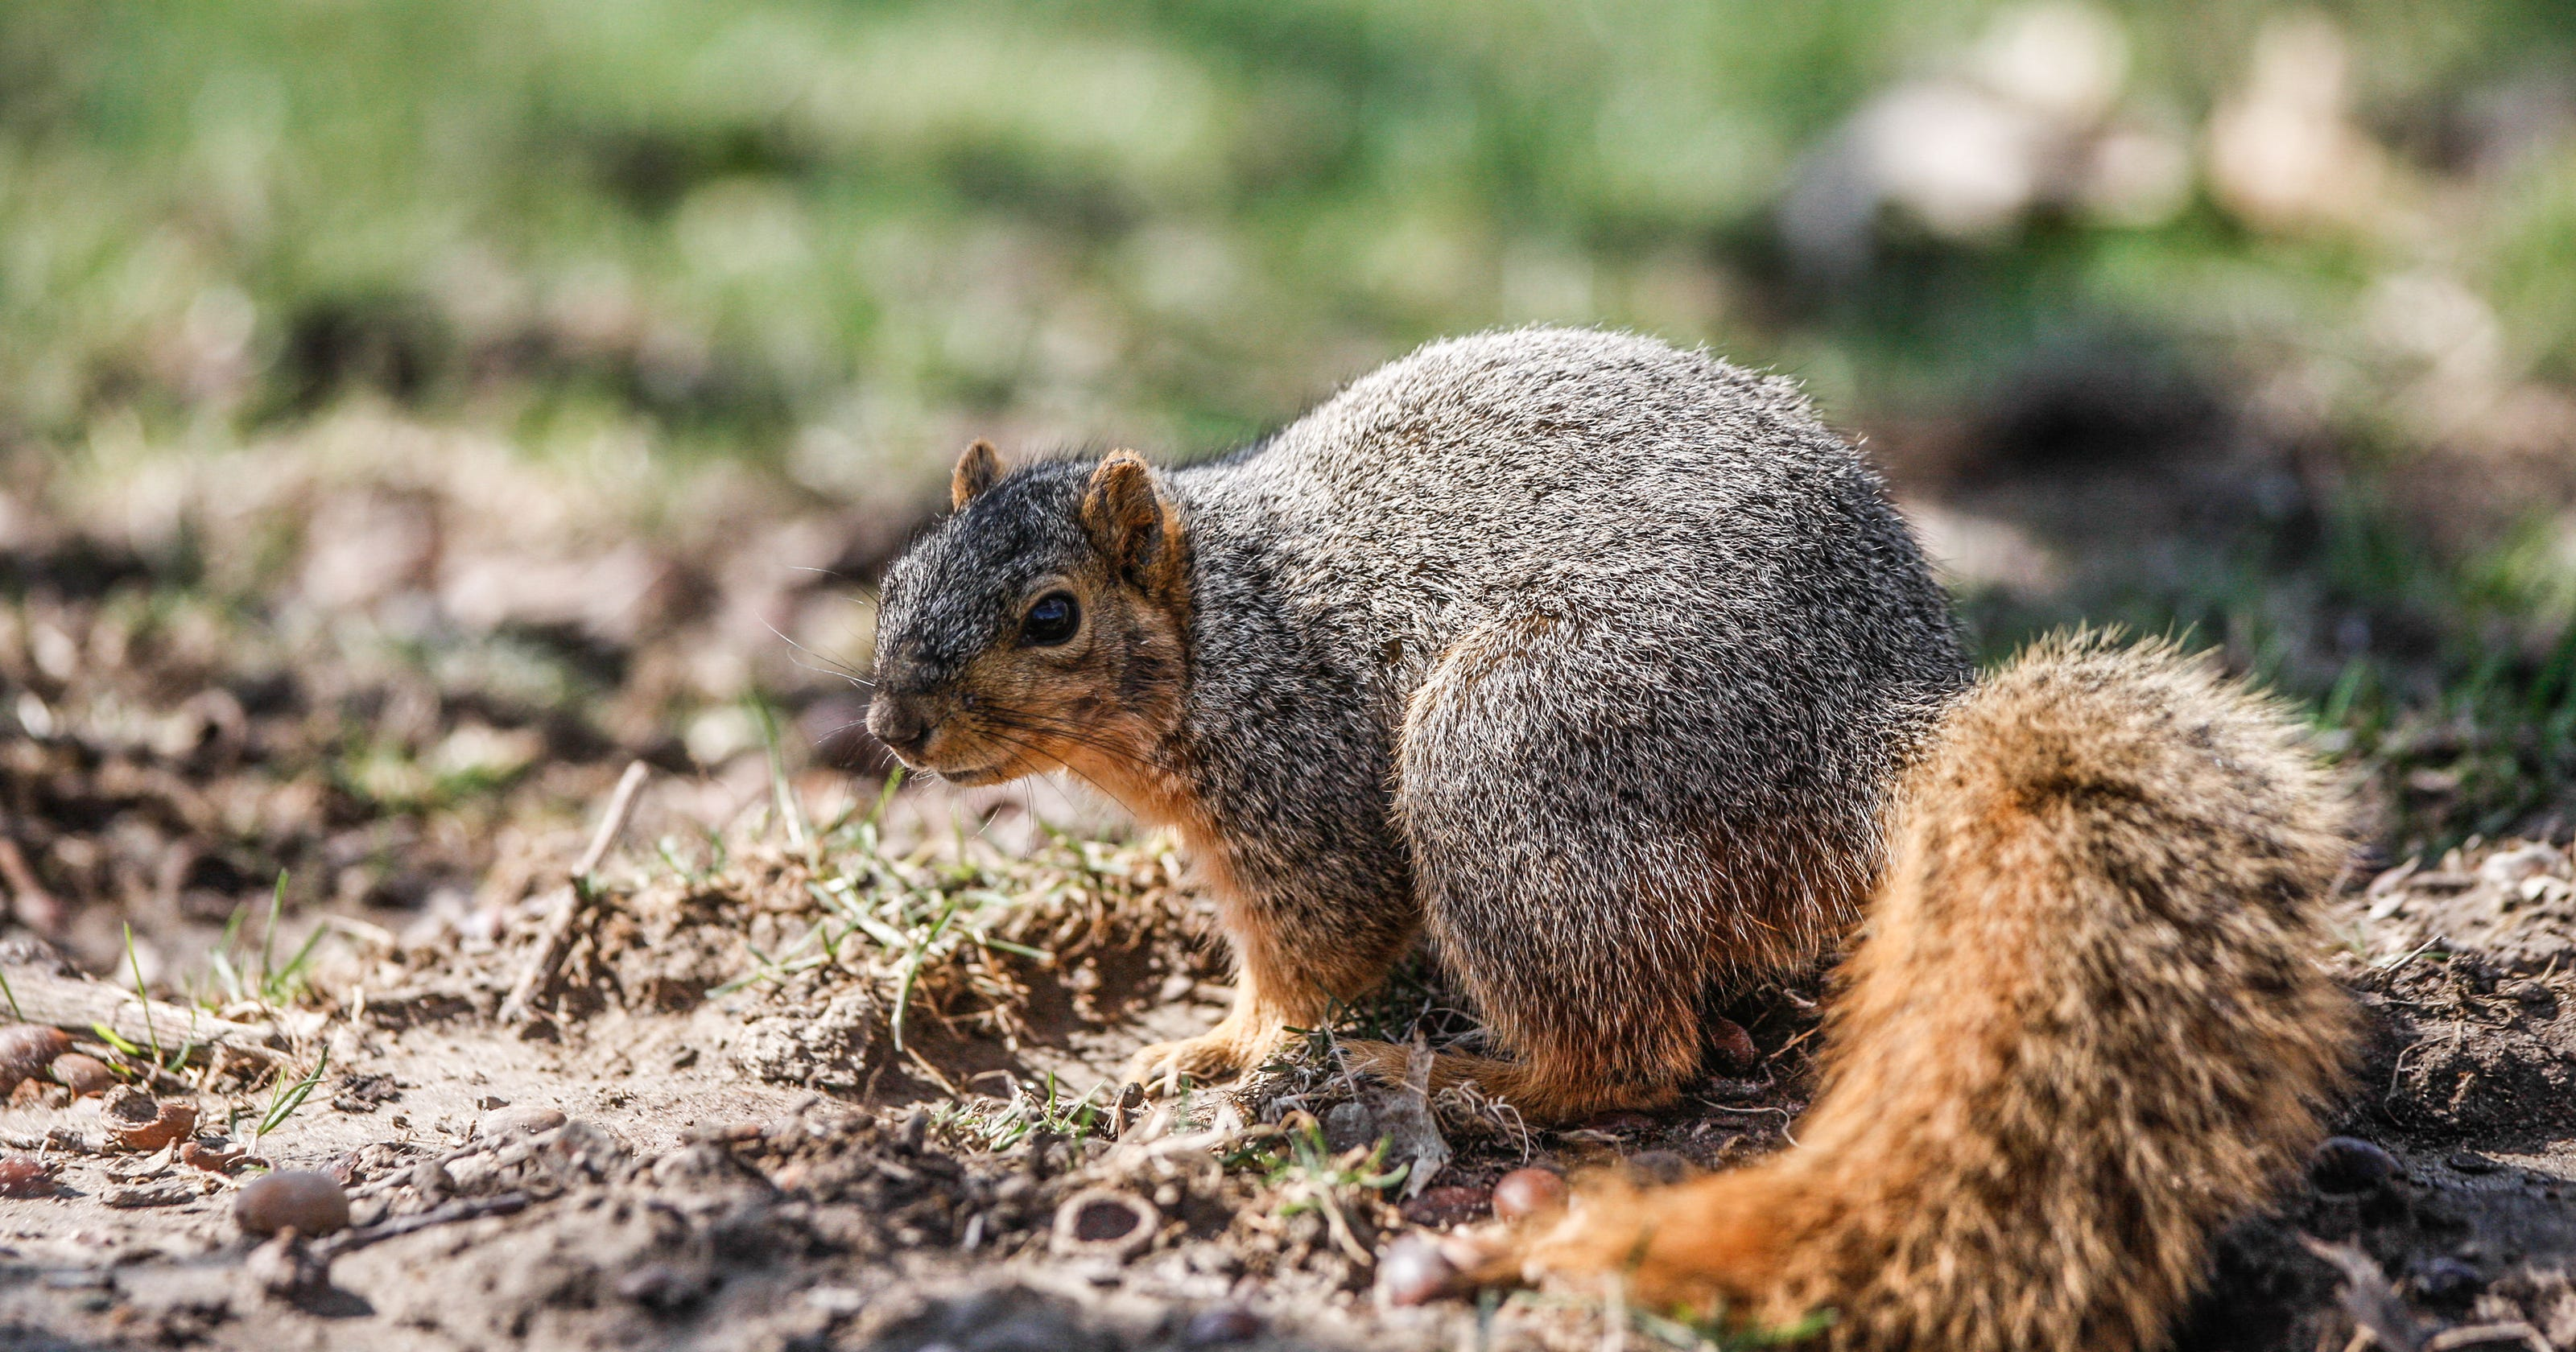 Hoosiers, your squirrel pelts are finally worth something